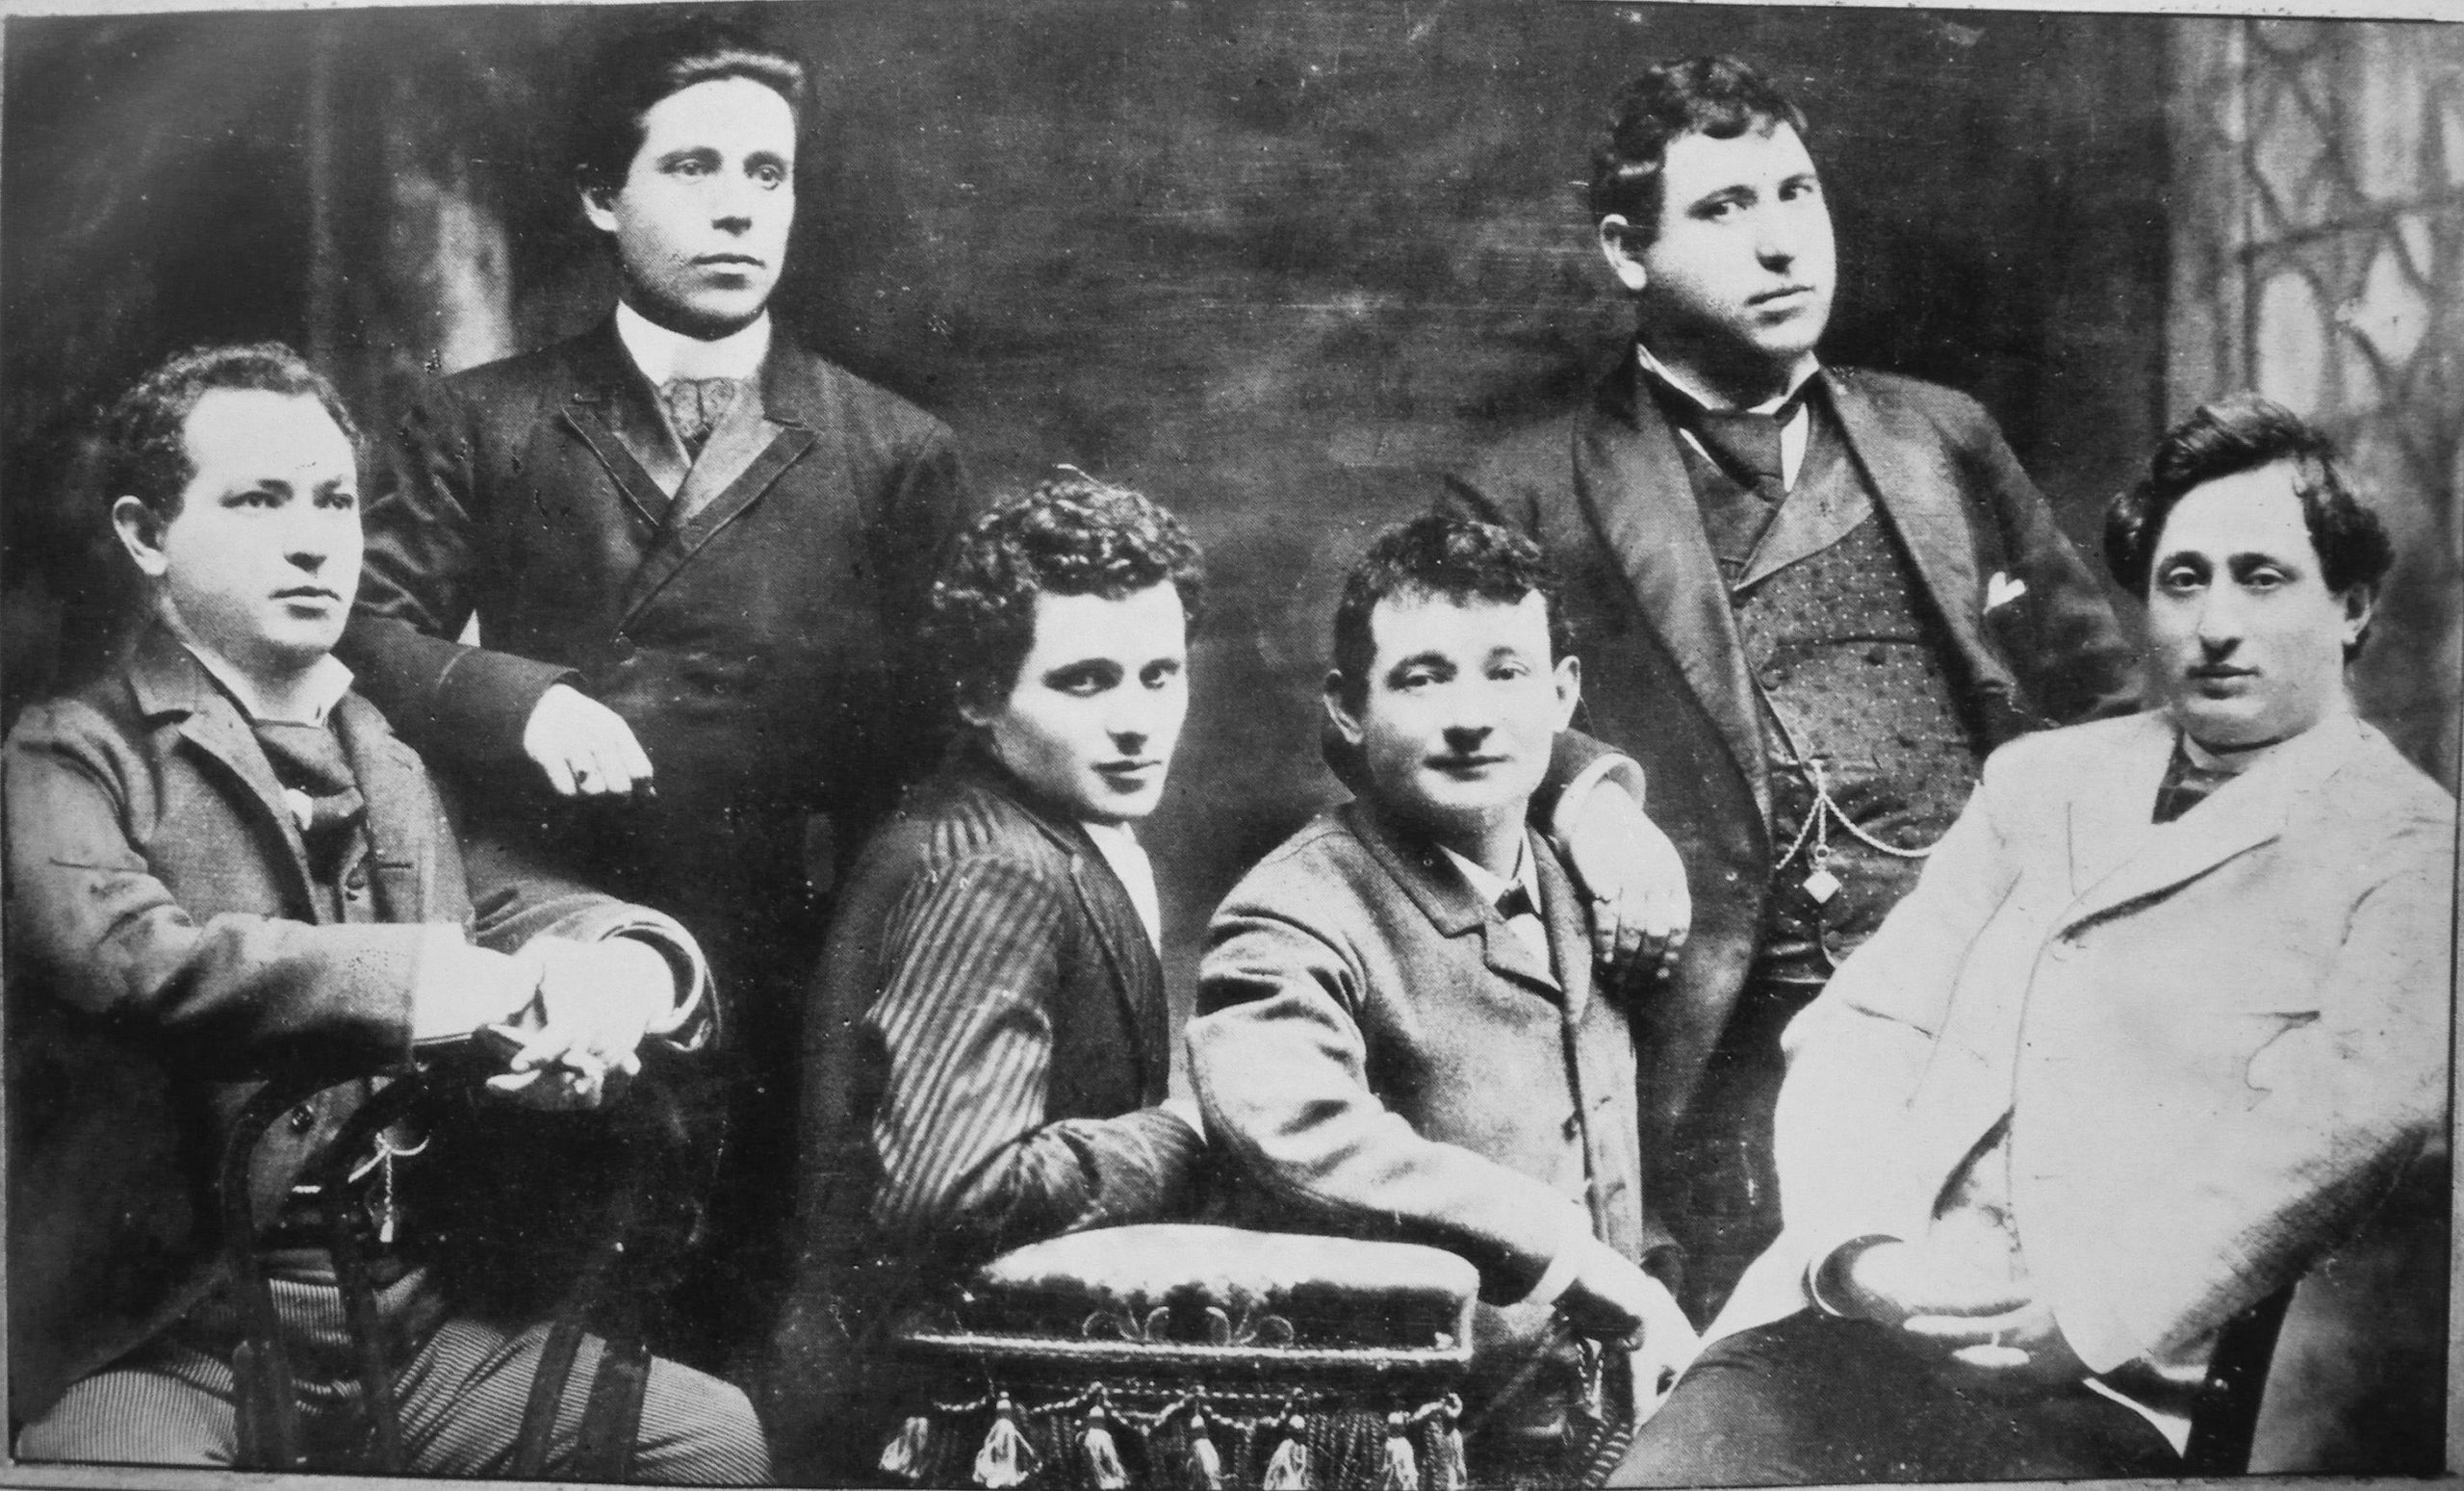 Odessa's loss, England and America's gain. Jacob Adler (far right) with other actors from the Yiddish theater, New York, 1888